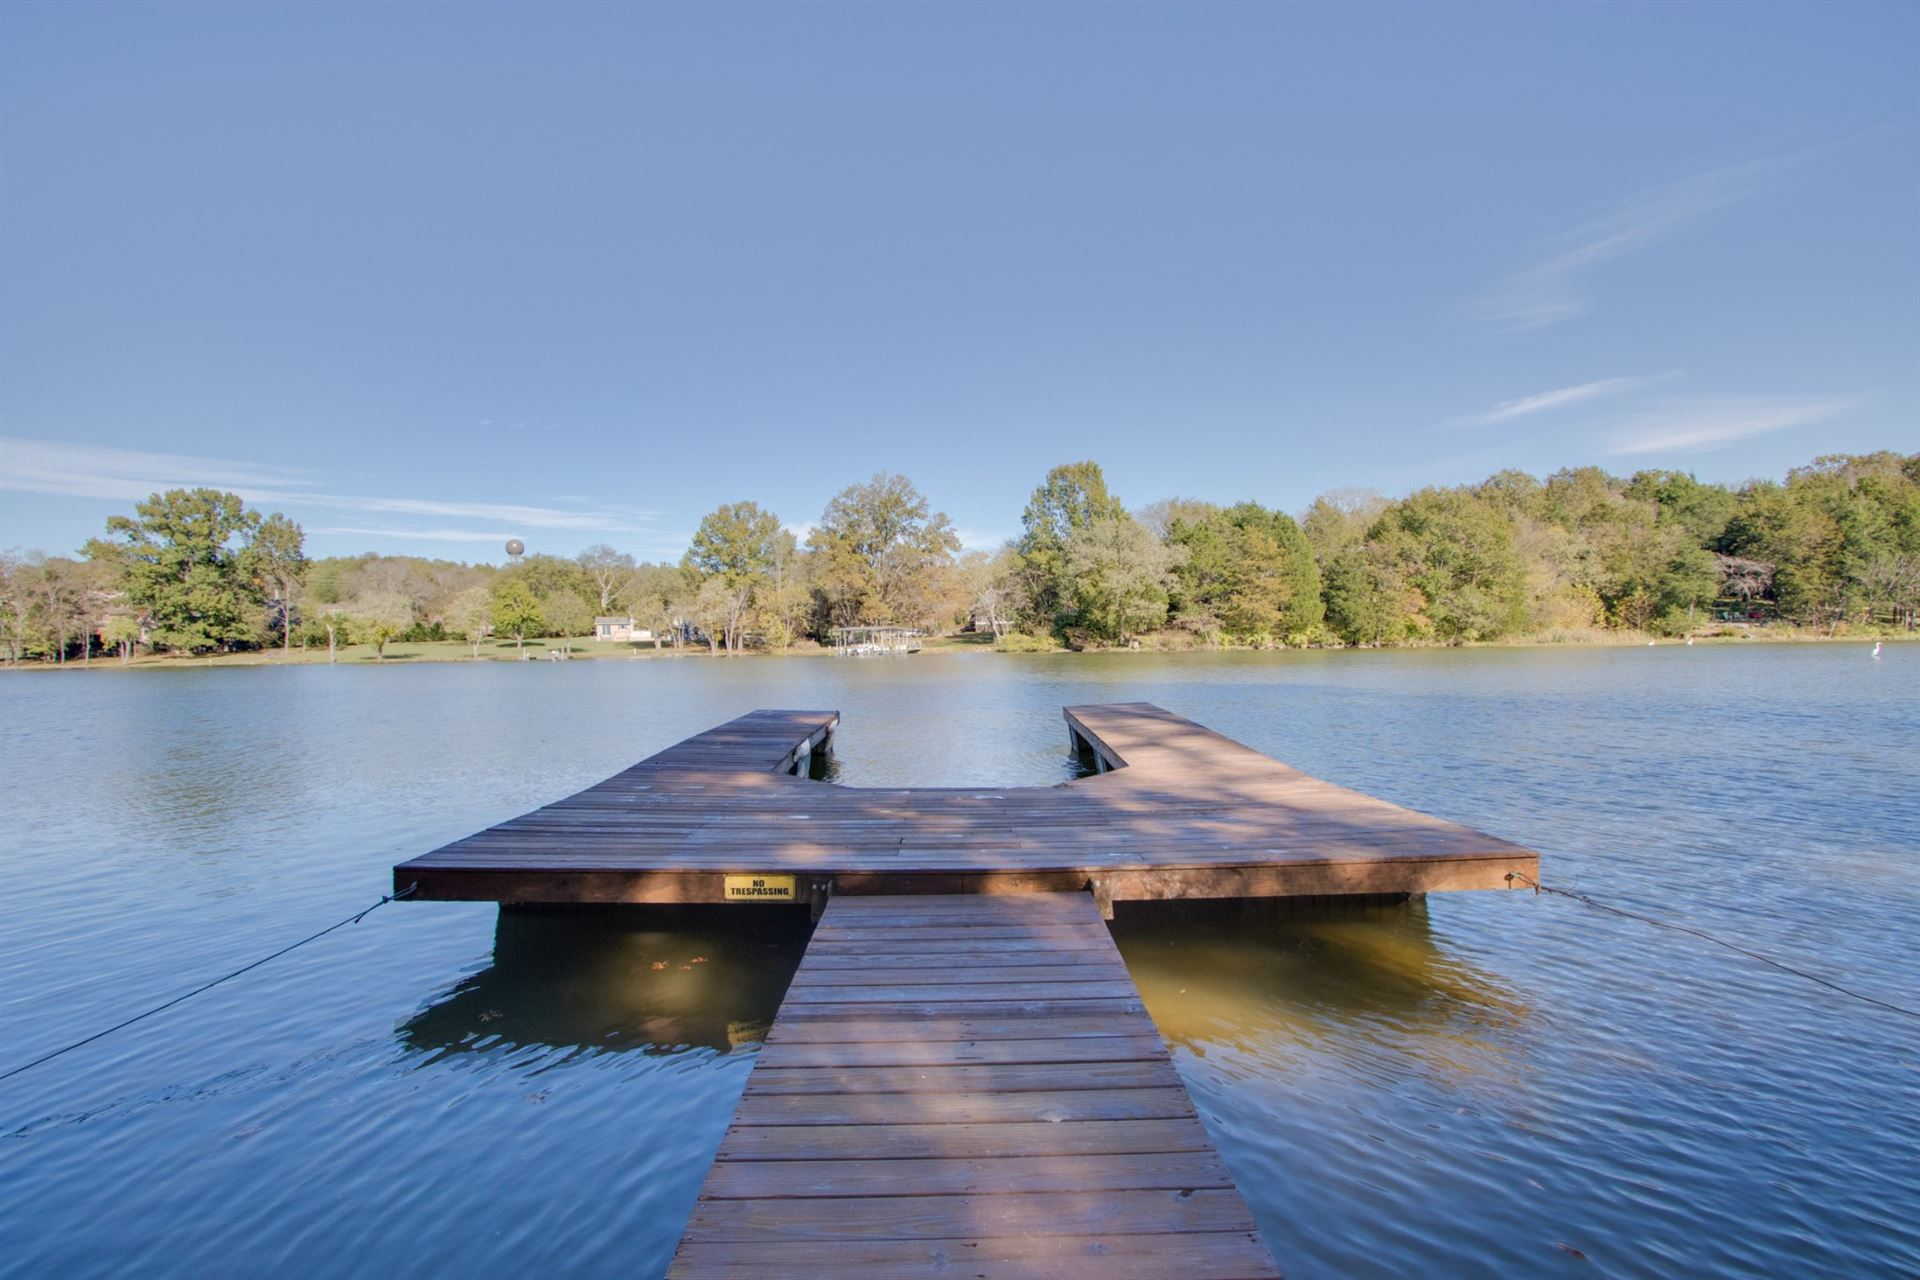 411 Lakeshore Dr, Old Hickory, TN 37138 - MLS#: 2203261